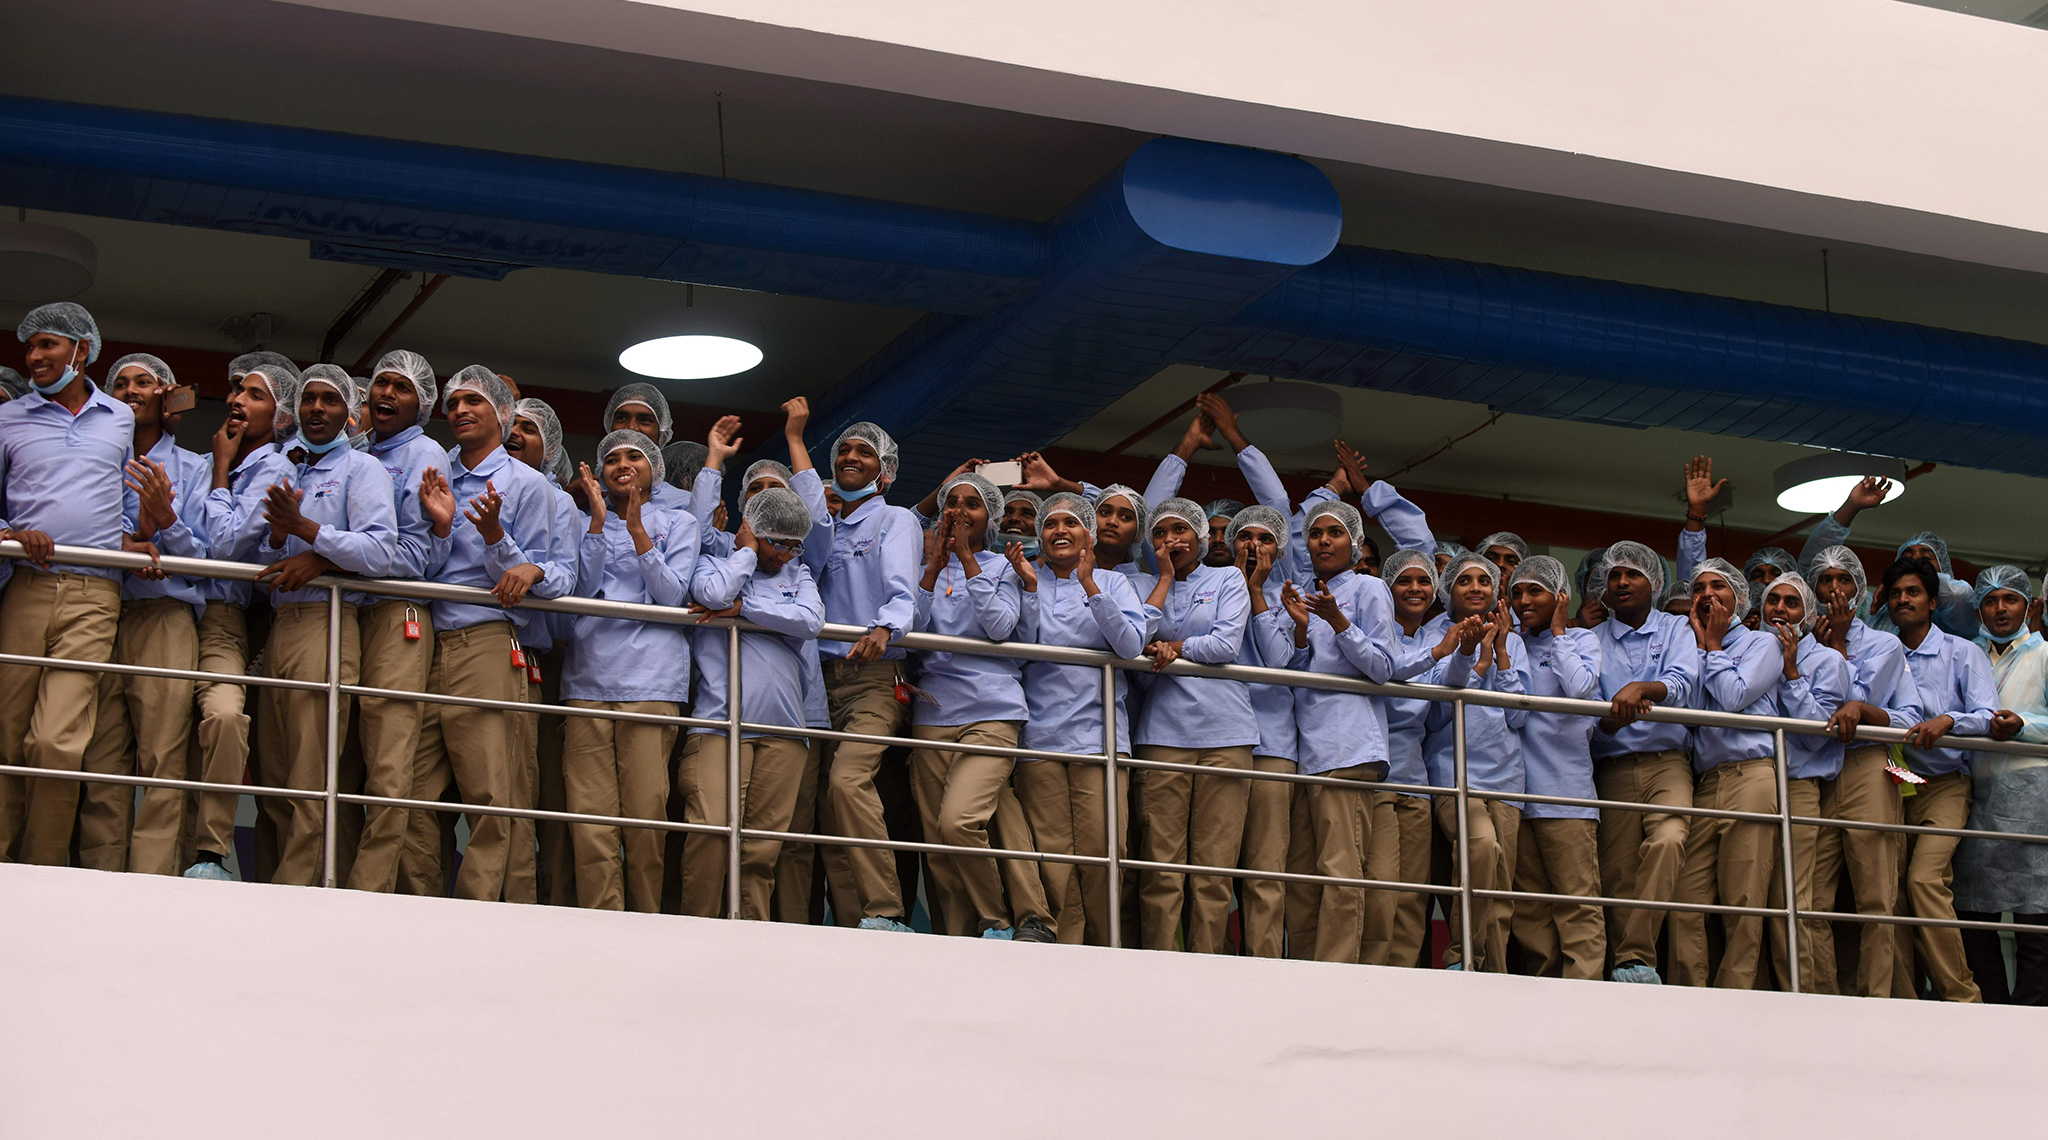 Indian workers cheer during the opening of the Mondelez International facility in Sri City in the Indian state of Andhra Pradesh on 25 April, 2016. The facility will produce approximately 60,000 tons of Cadbury Dairy Milk chocolate annually.